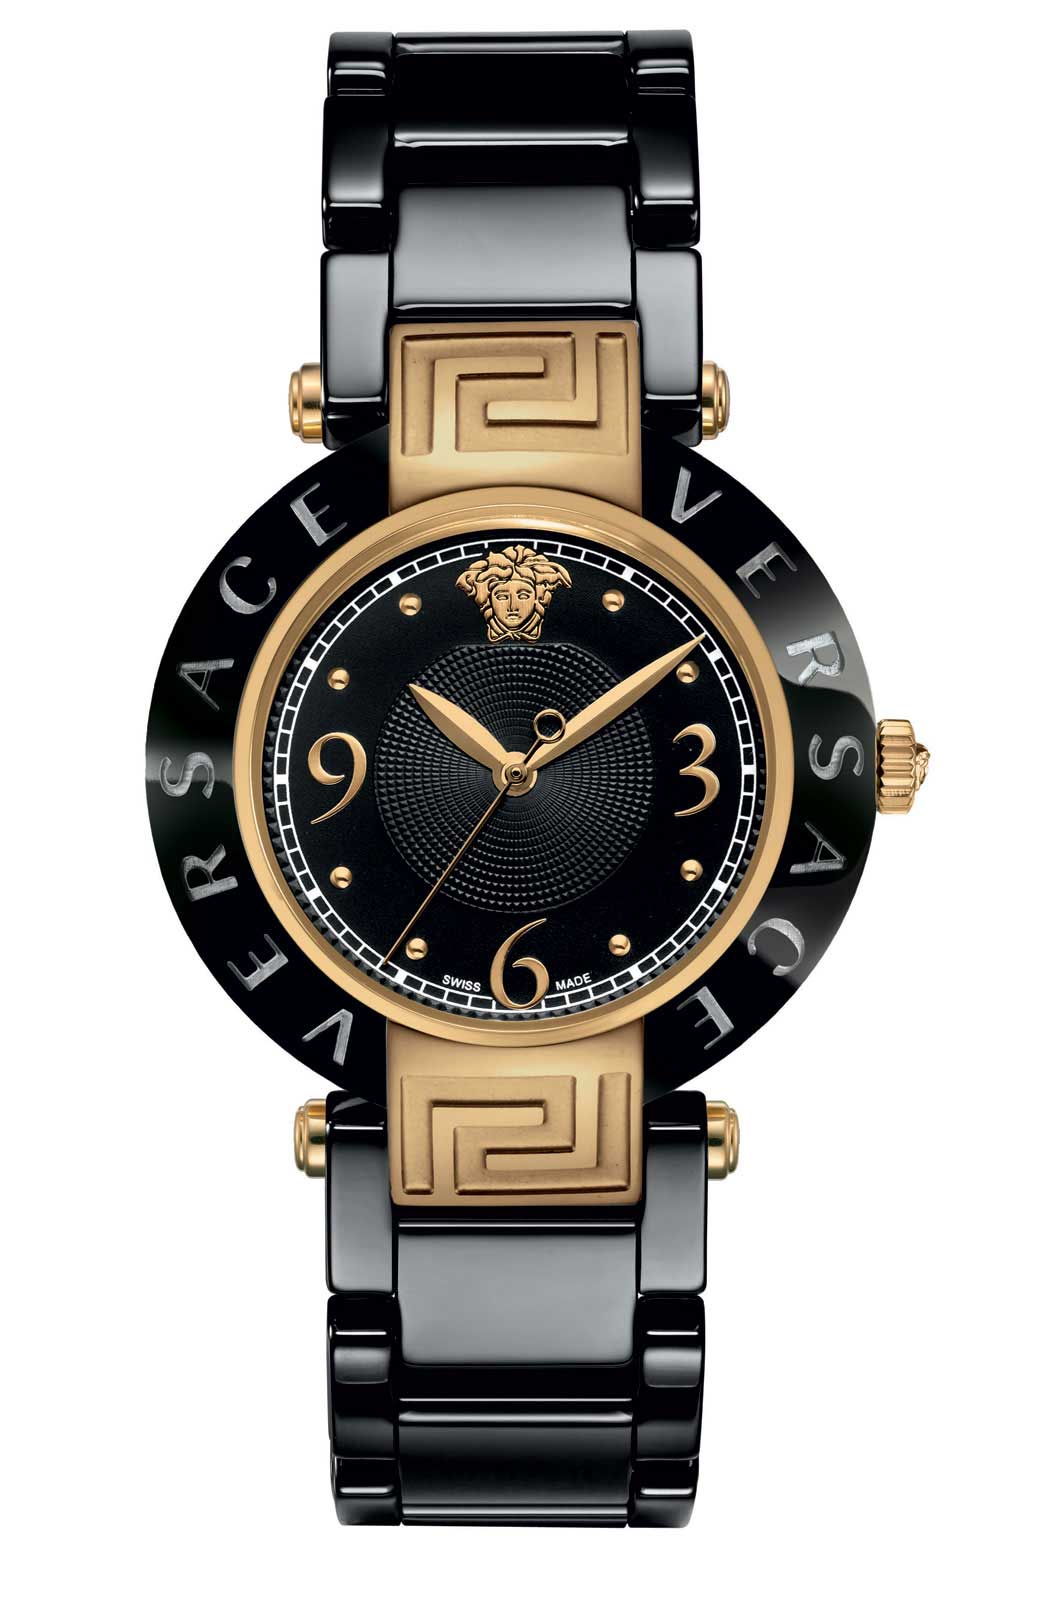 Versace women's watches19